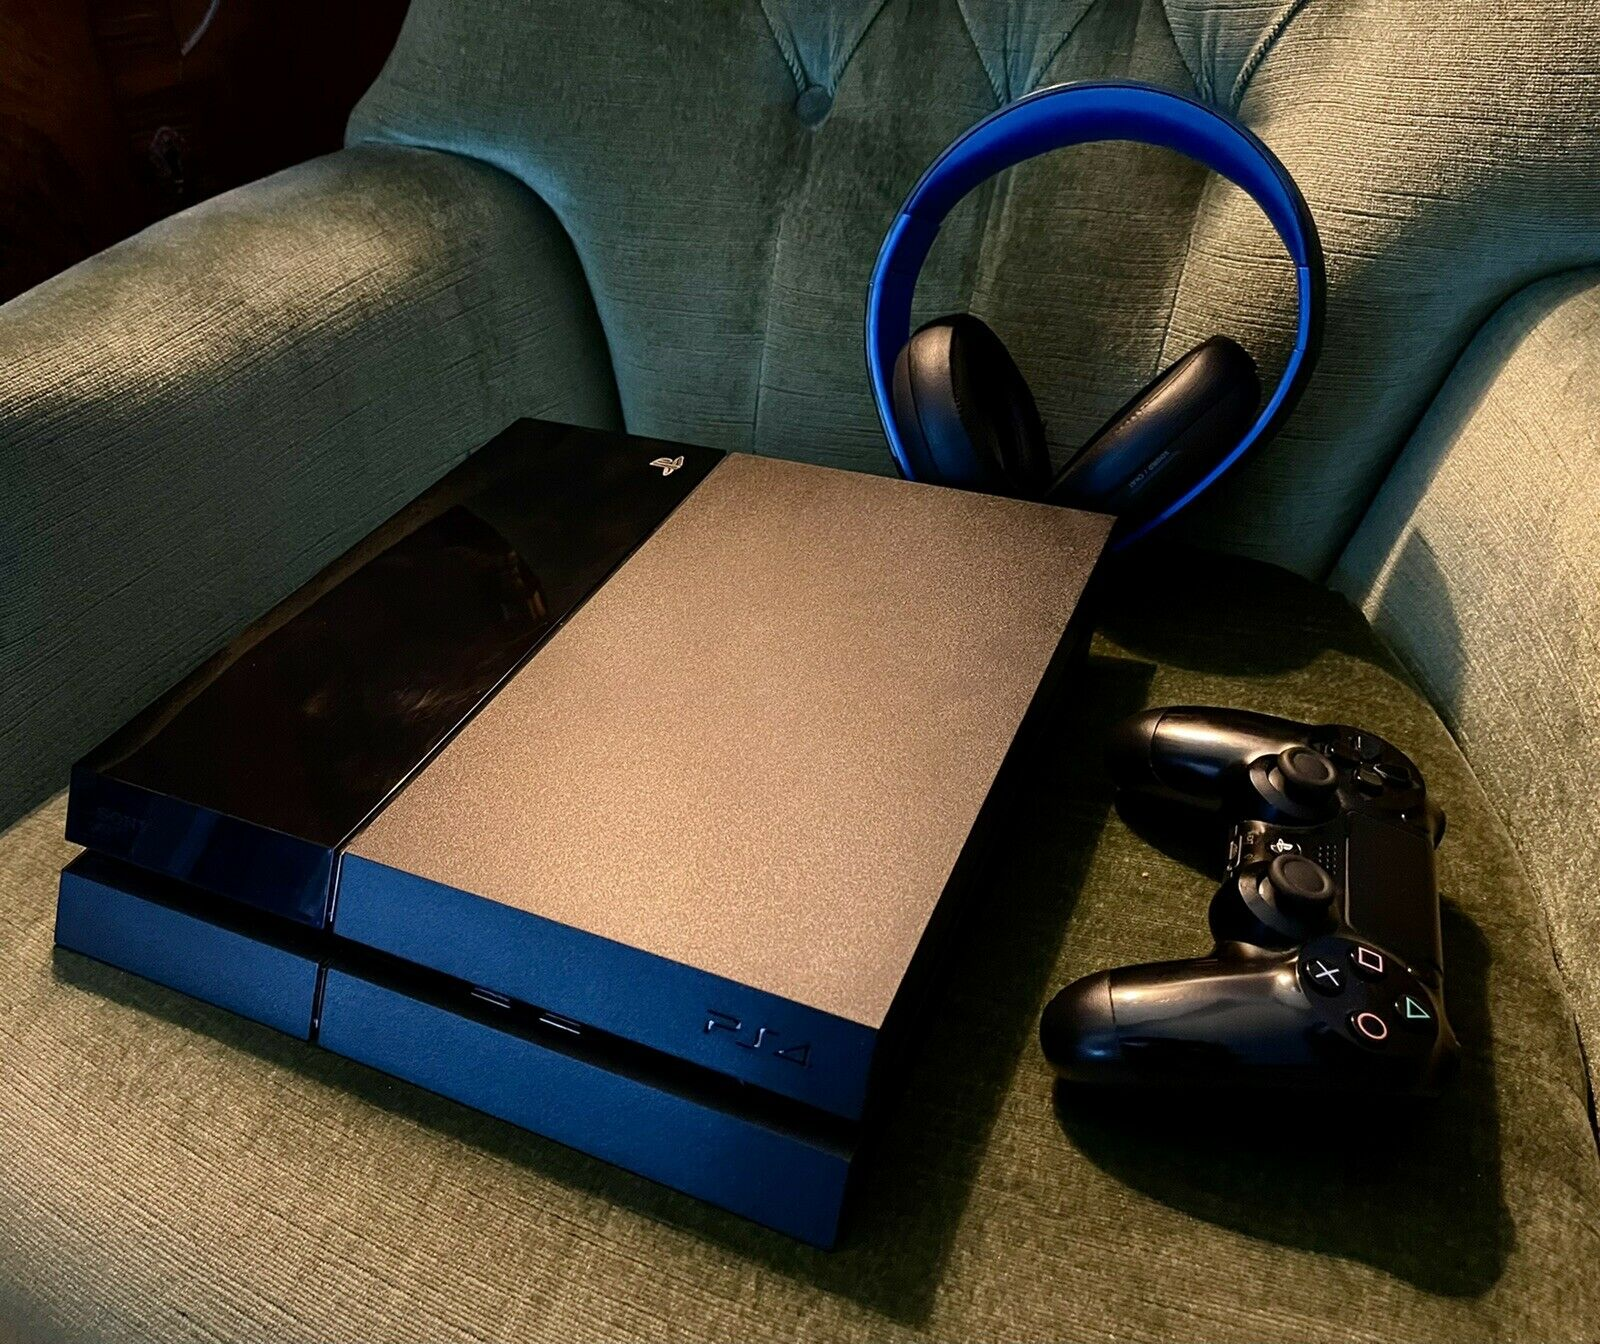 Playstation 4 (1TB) w/ Dual Shock 4 Controller and Official Headset